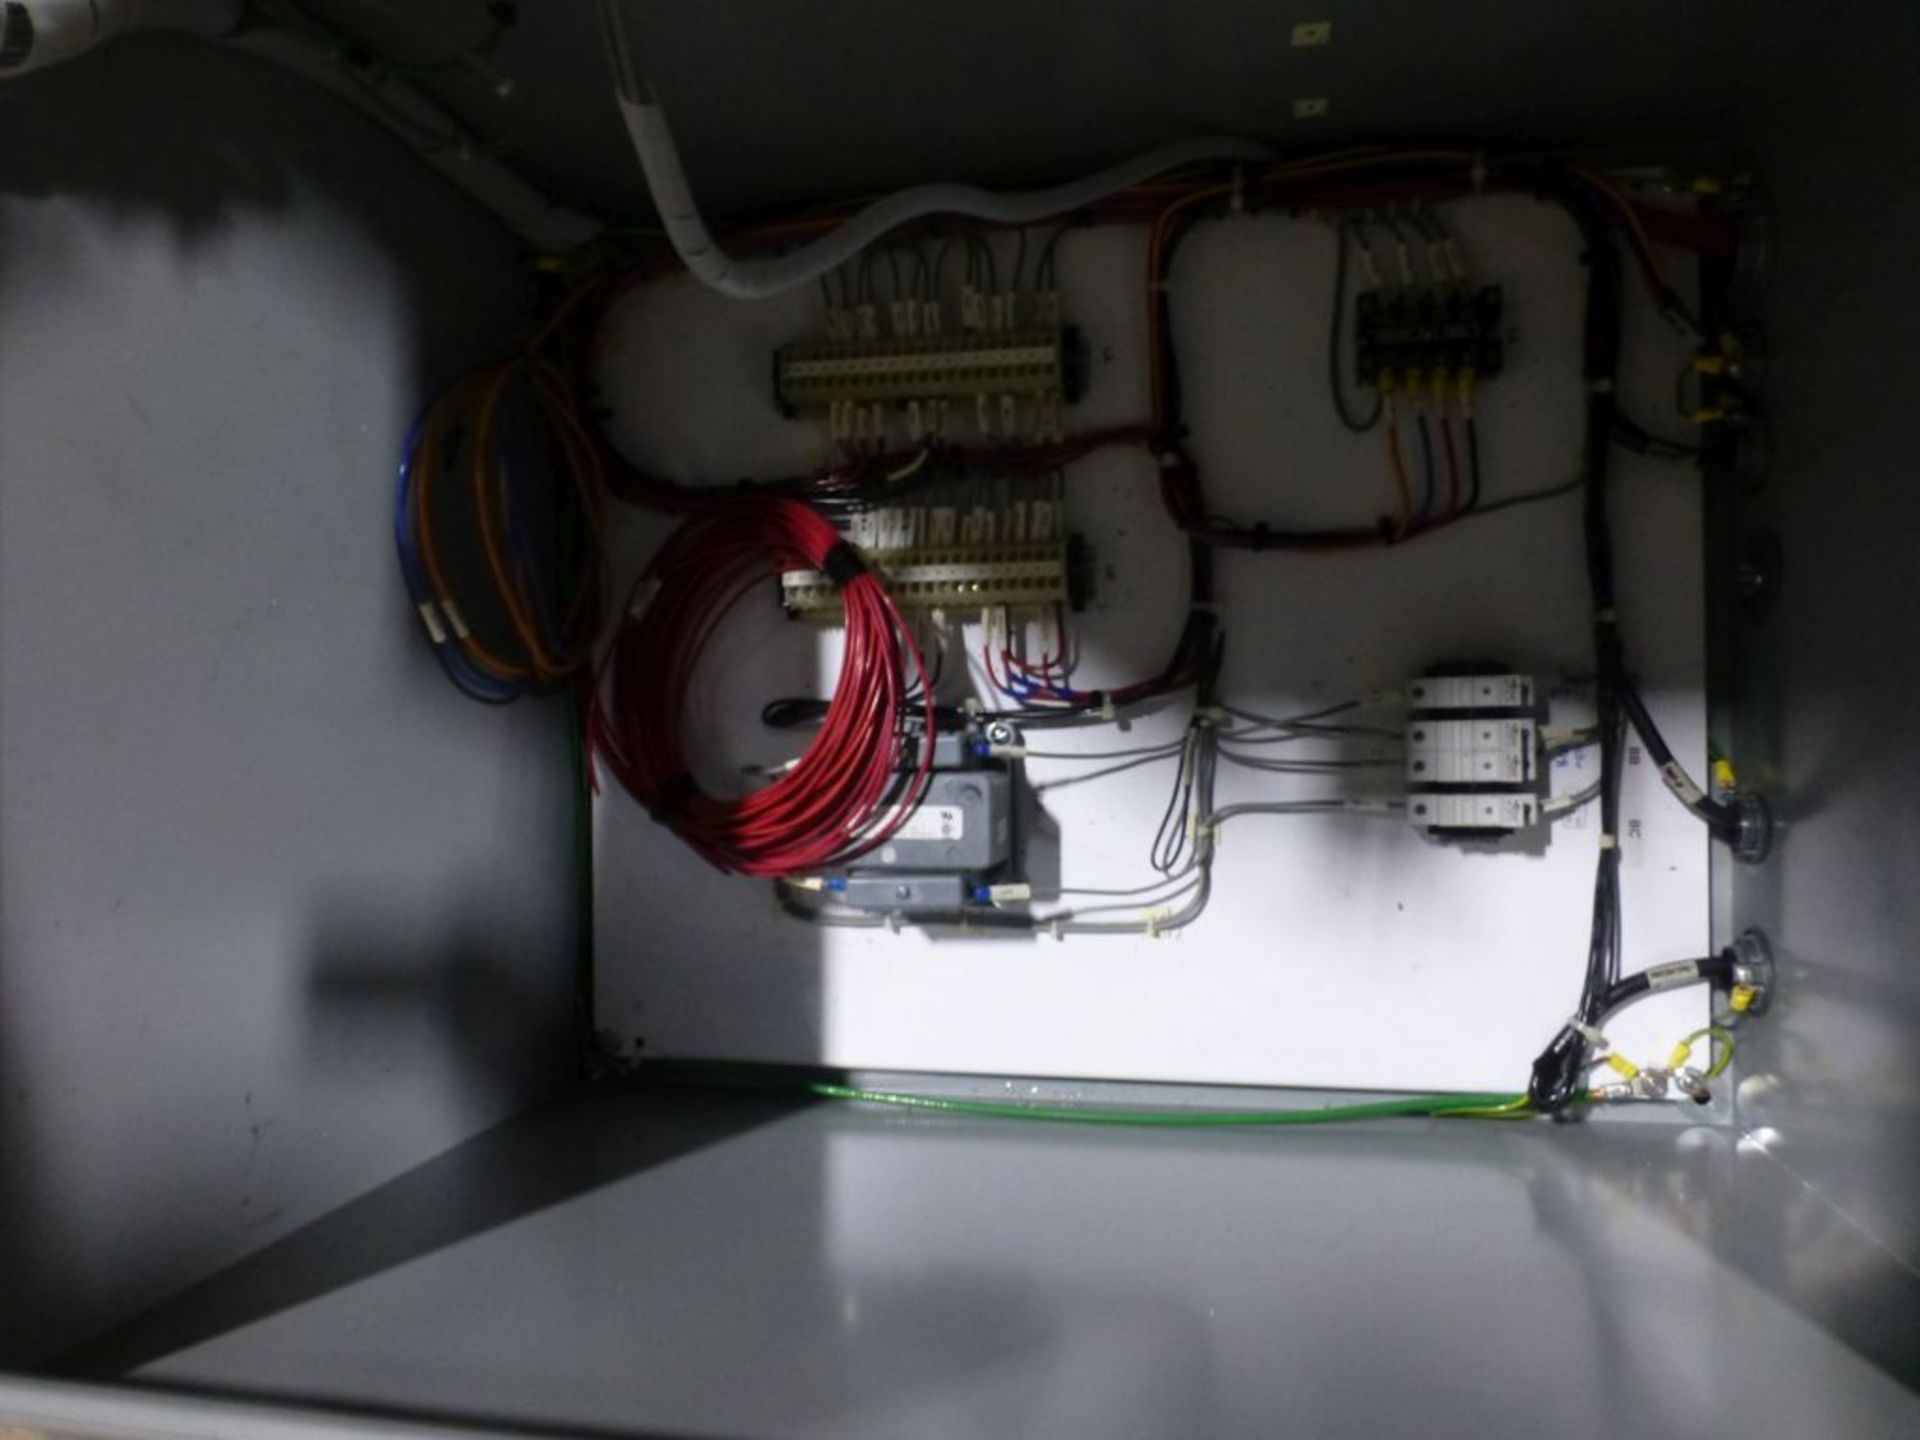 Substation Protective Relay Panel - Image 8 of 14